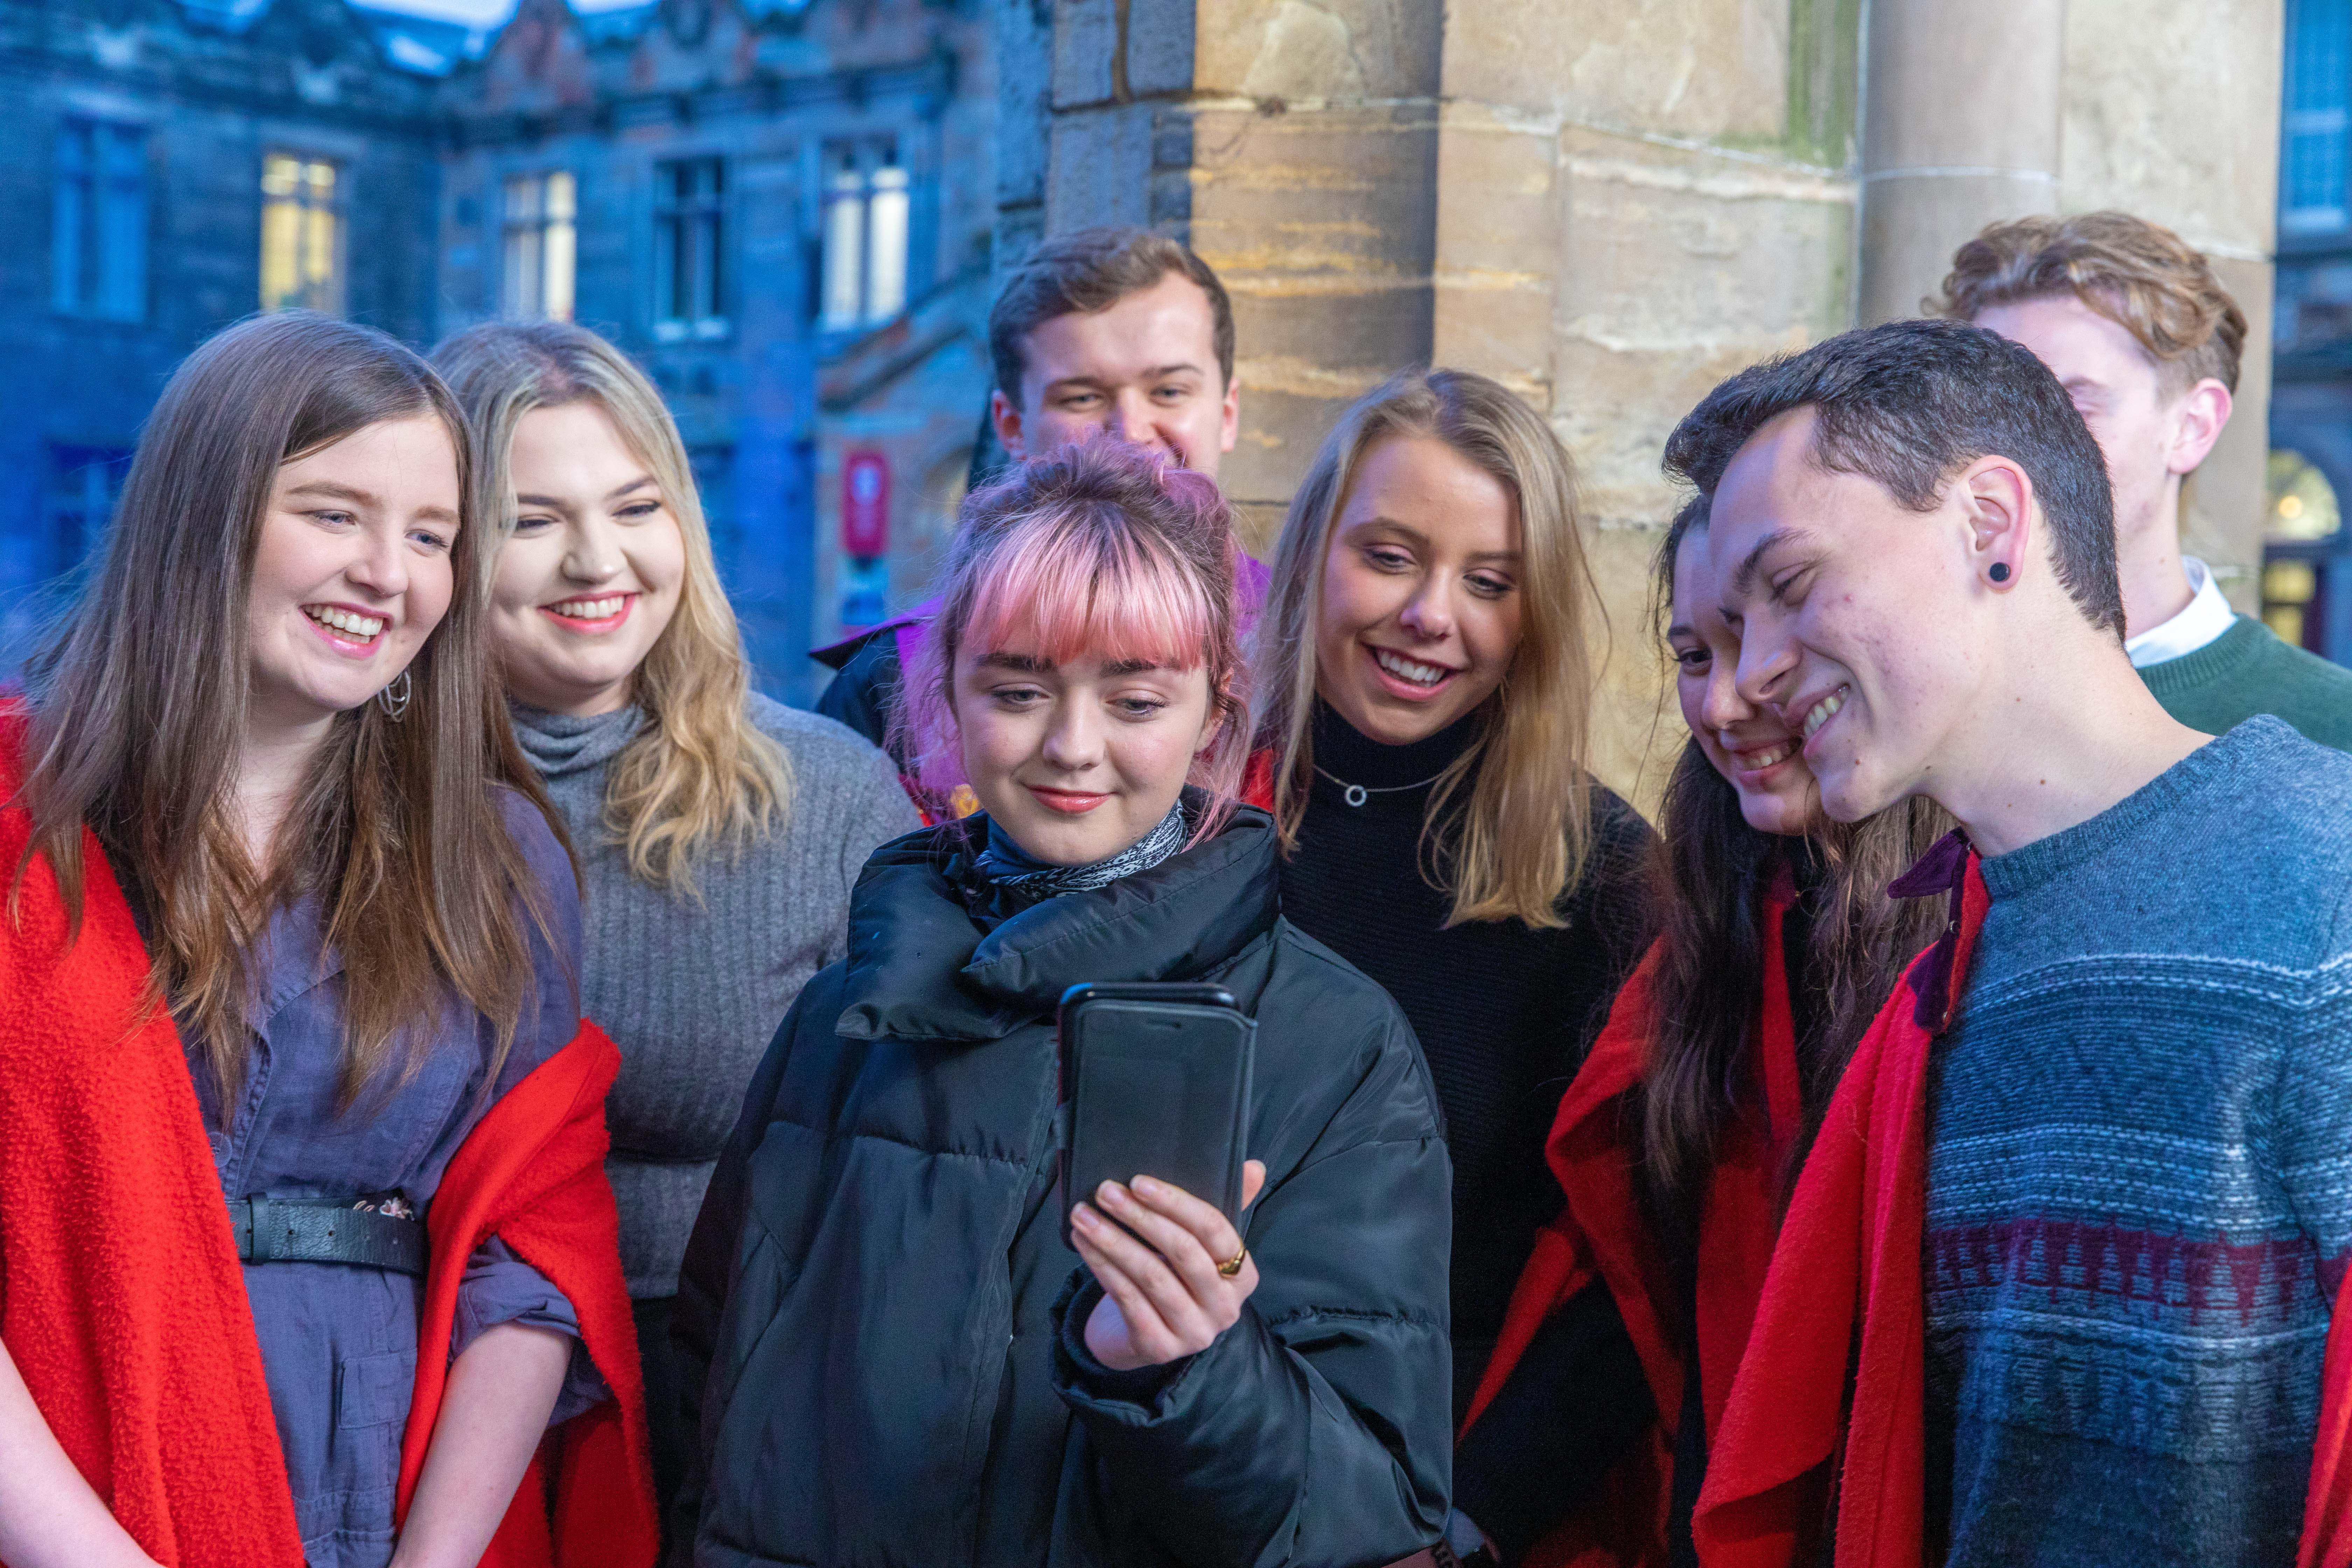 Game of Thrones Actress Maisie Williams with students of St Salvator's Choir.